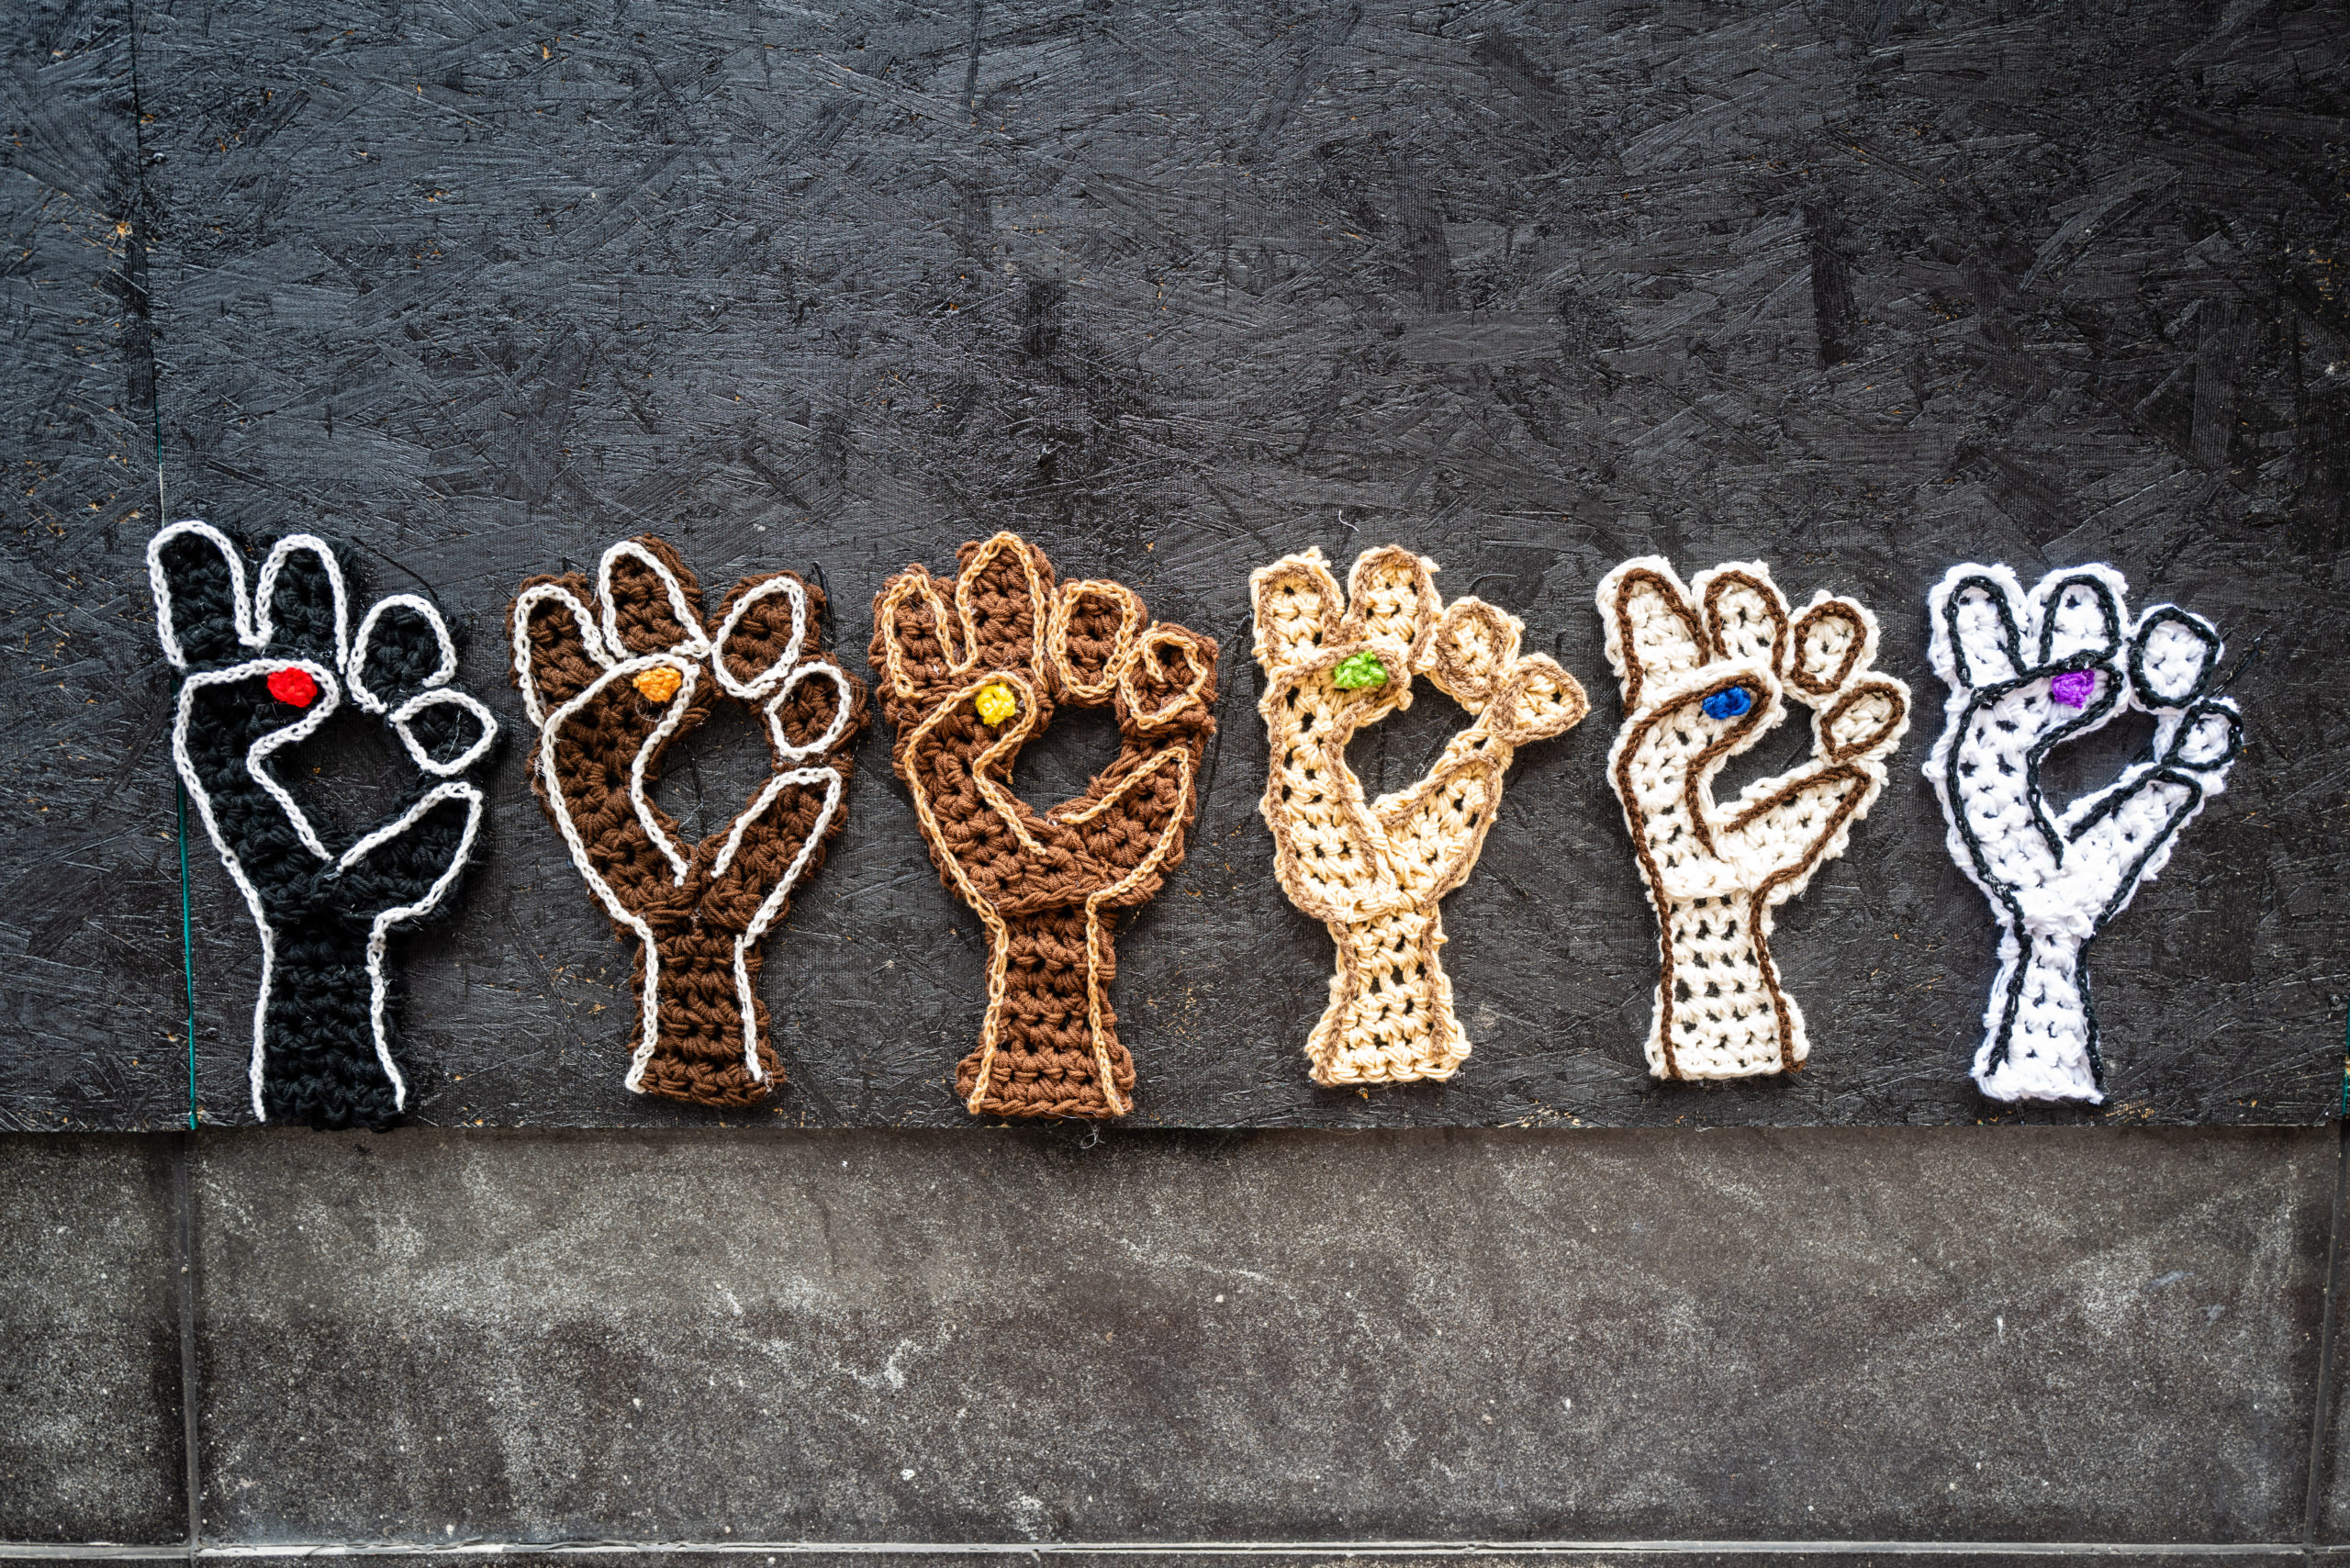 Fists in different skin colors raised in solidarity